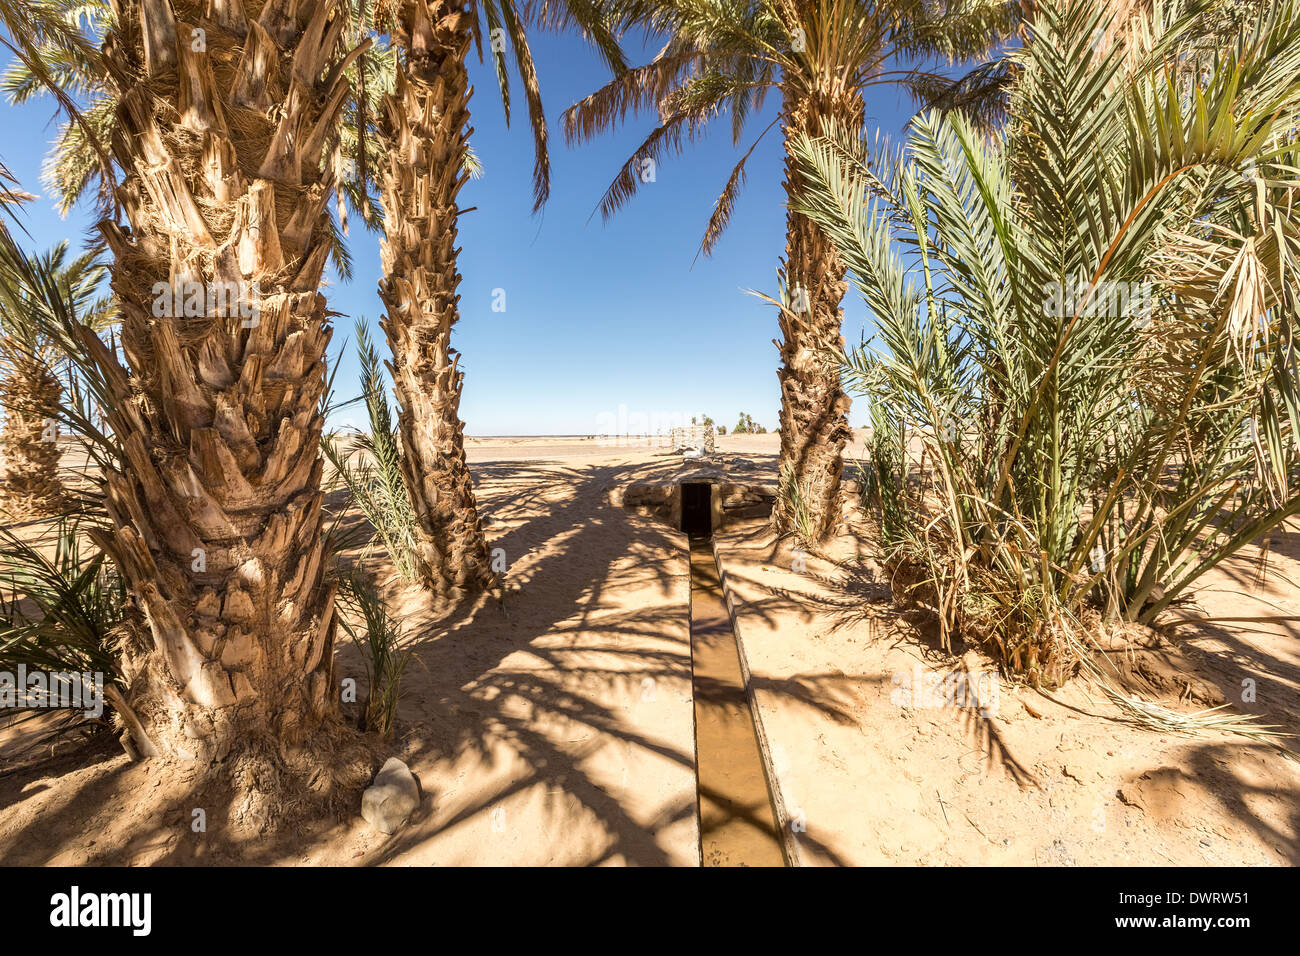 At the edge of oasis and desert, Merzouga, Morocco, Africa - Stock Image